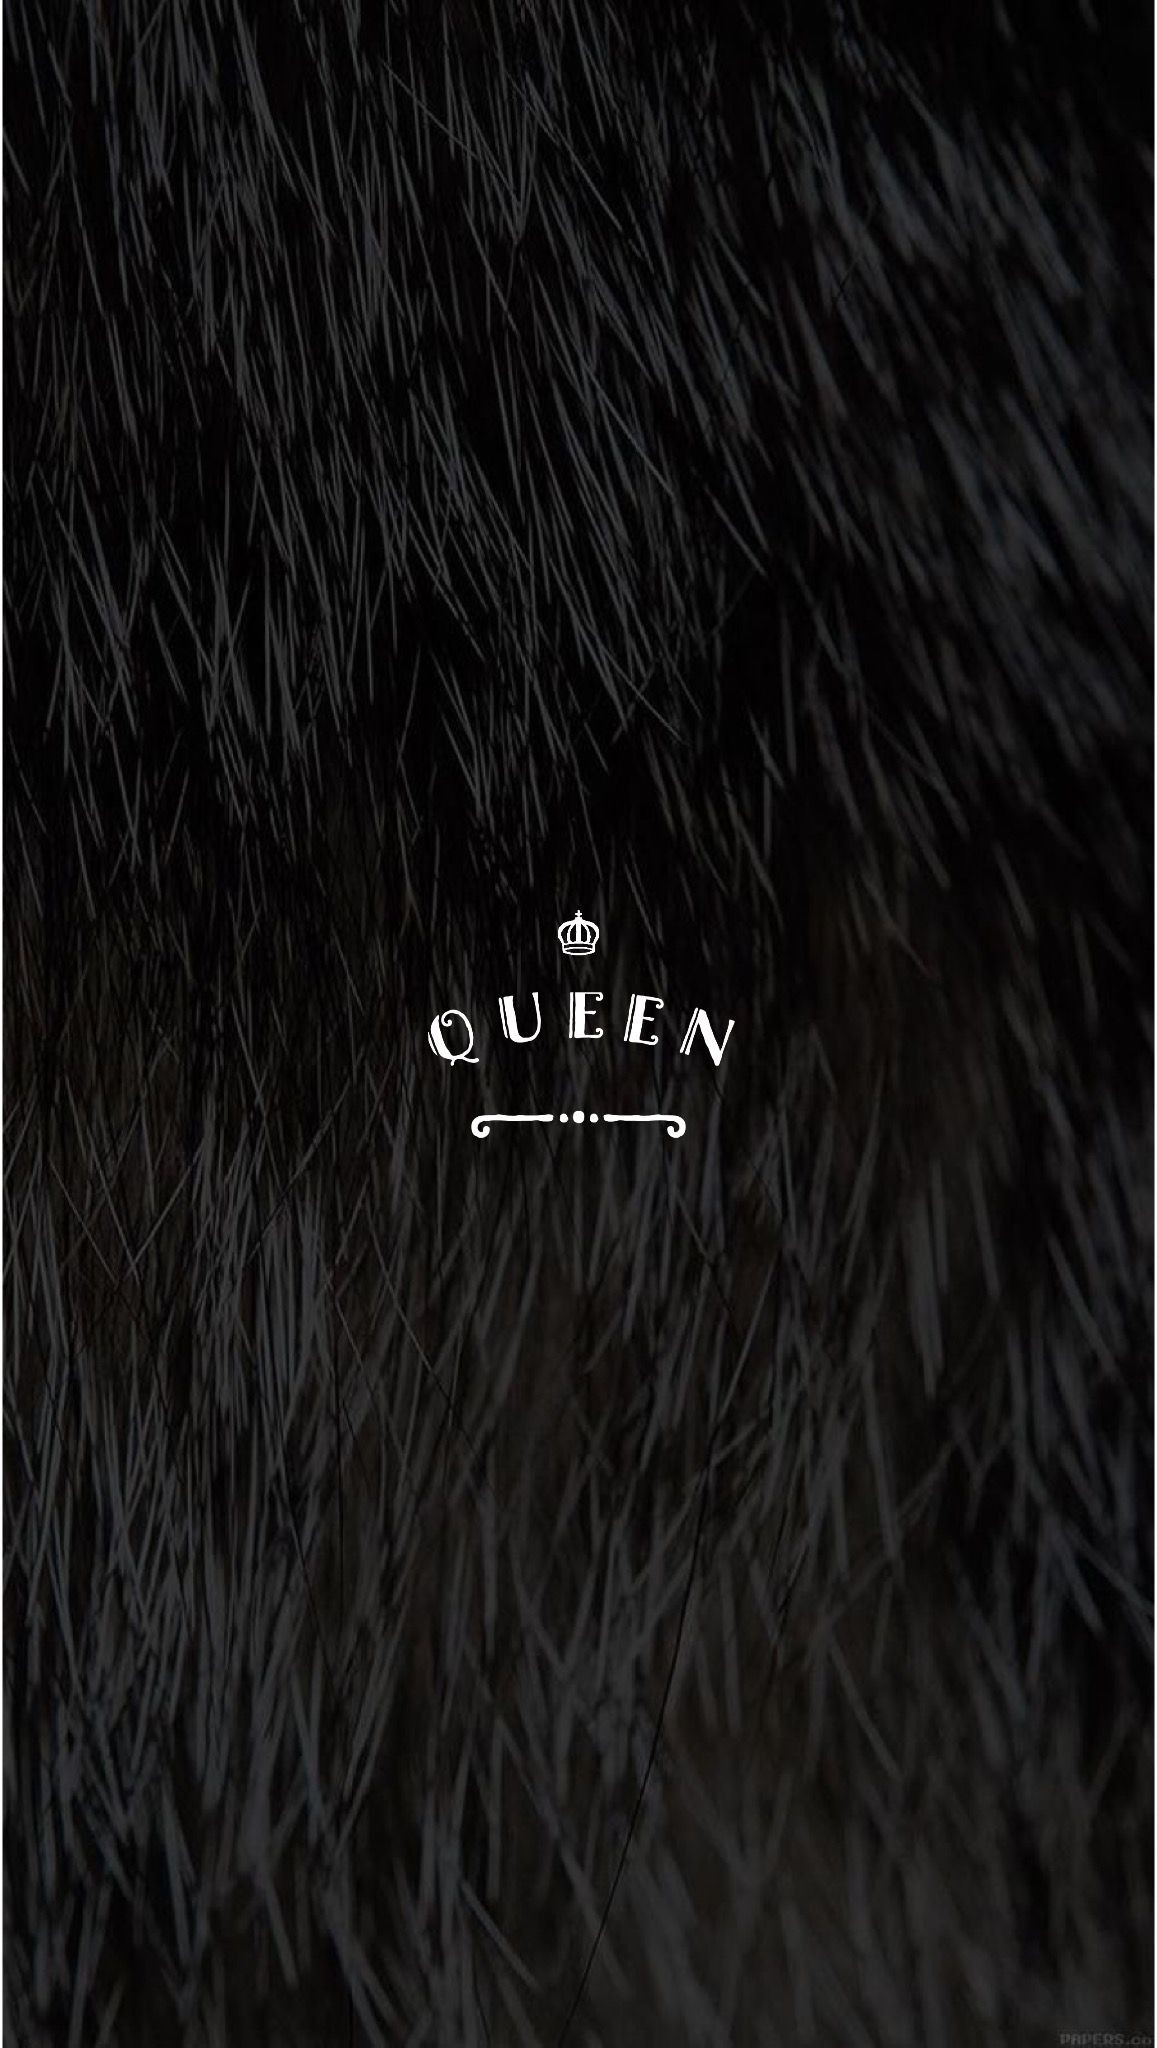 Res: 1157x2048, Black Faux Fur Pretty Positivity™ Queen iPhone Mobile Wallpaper by @EvaLand